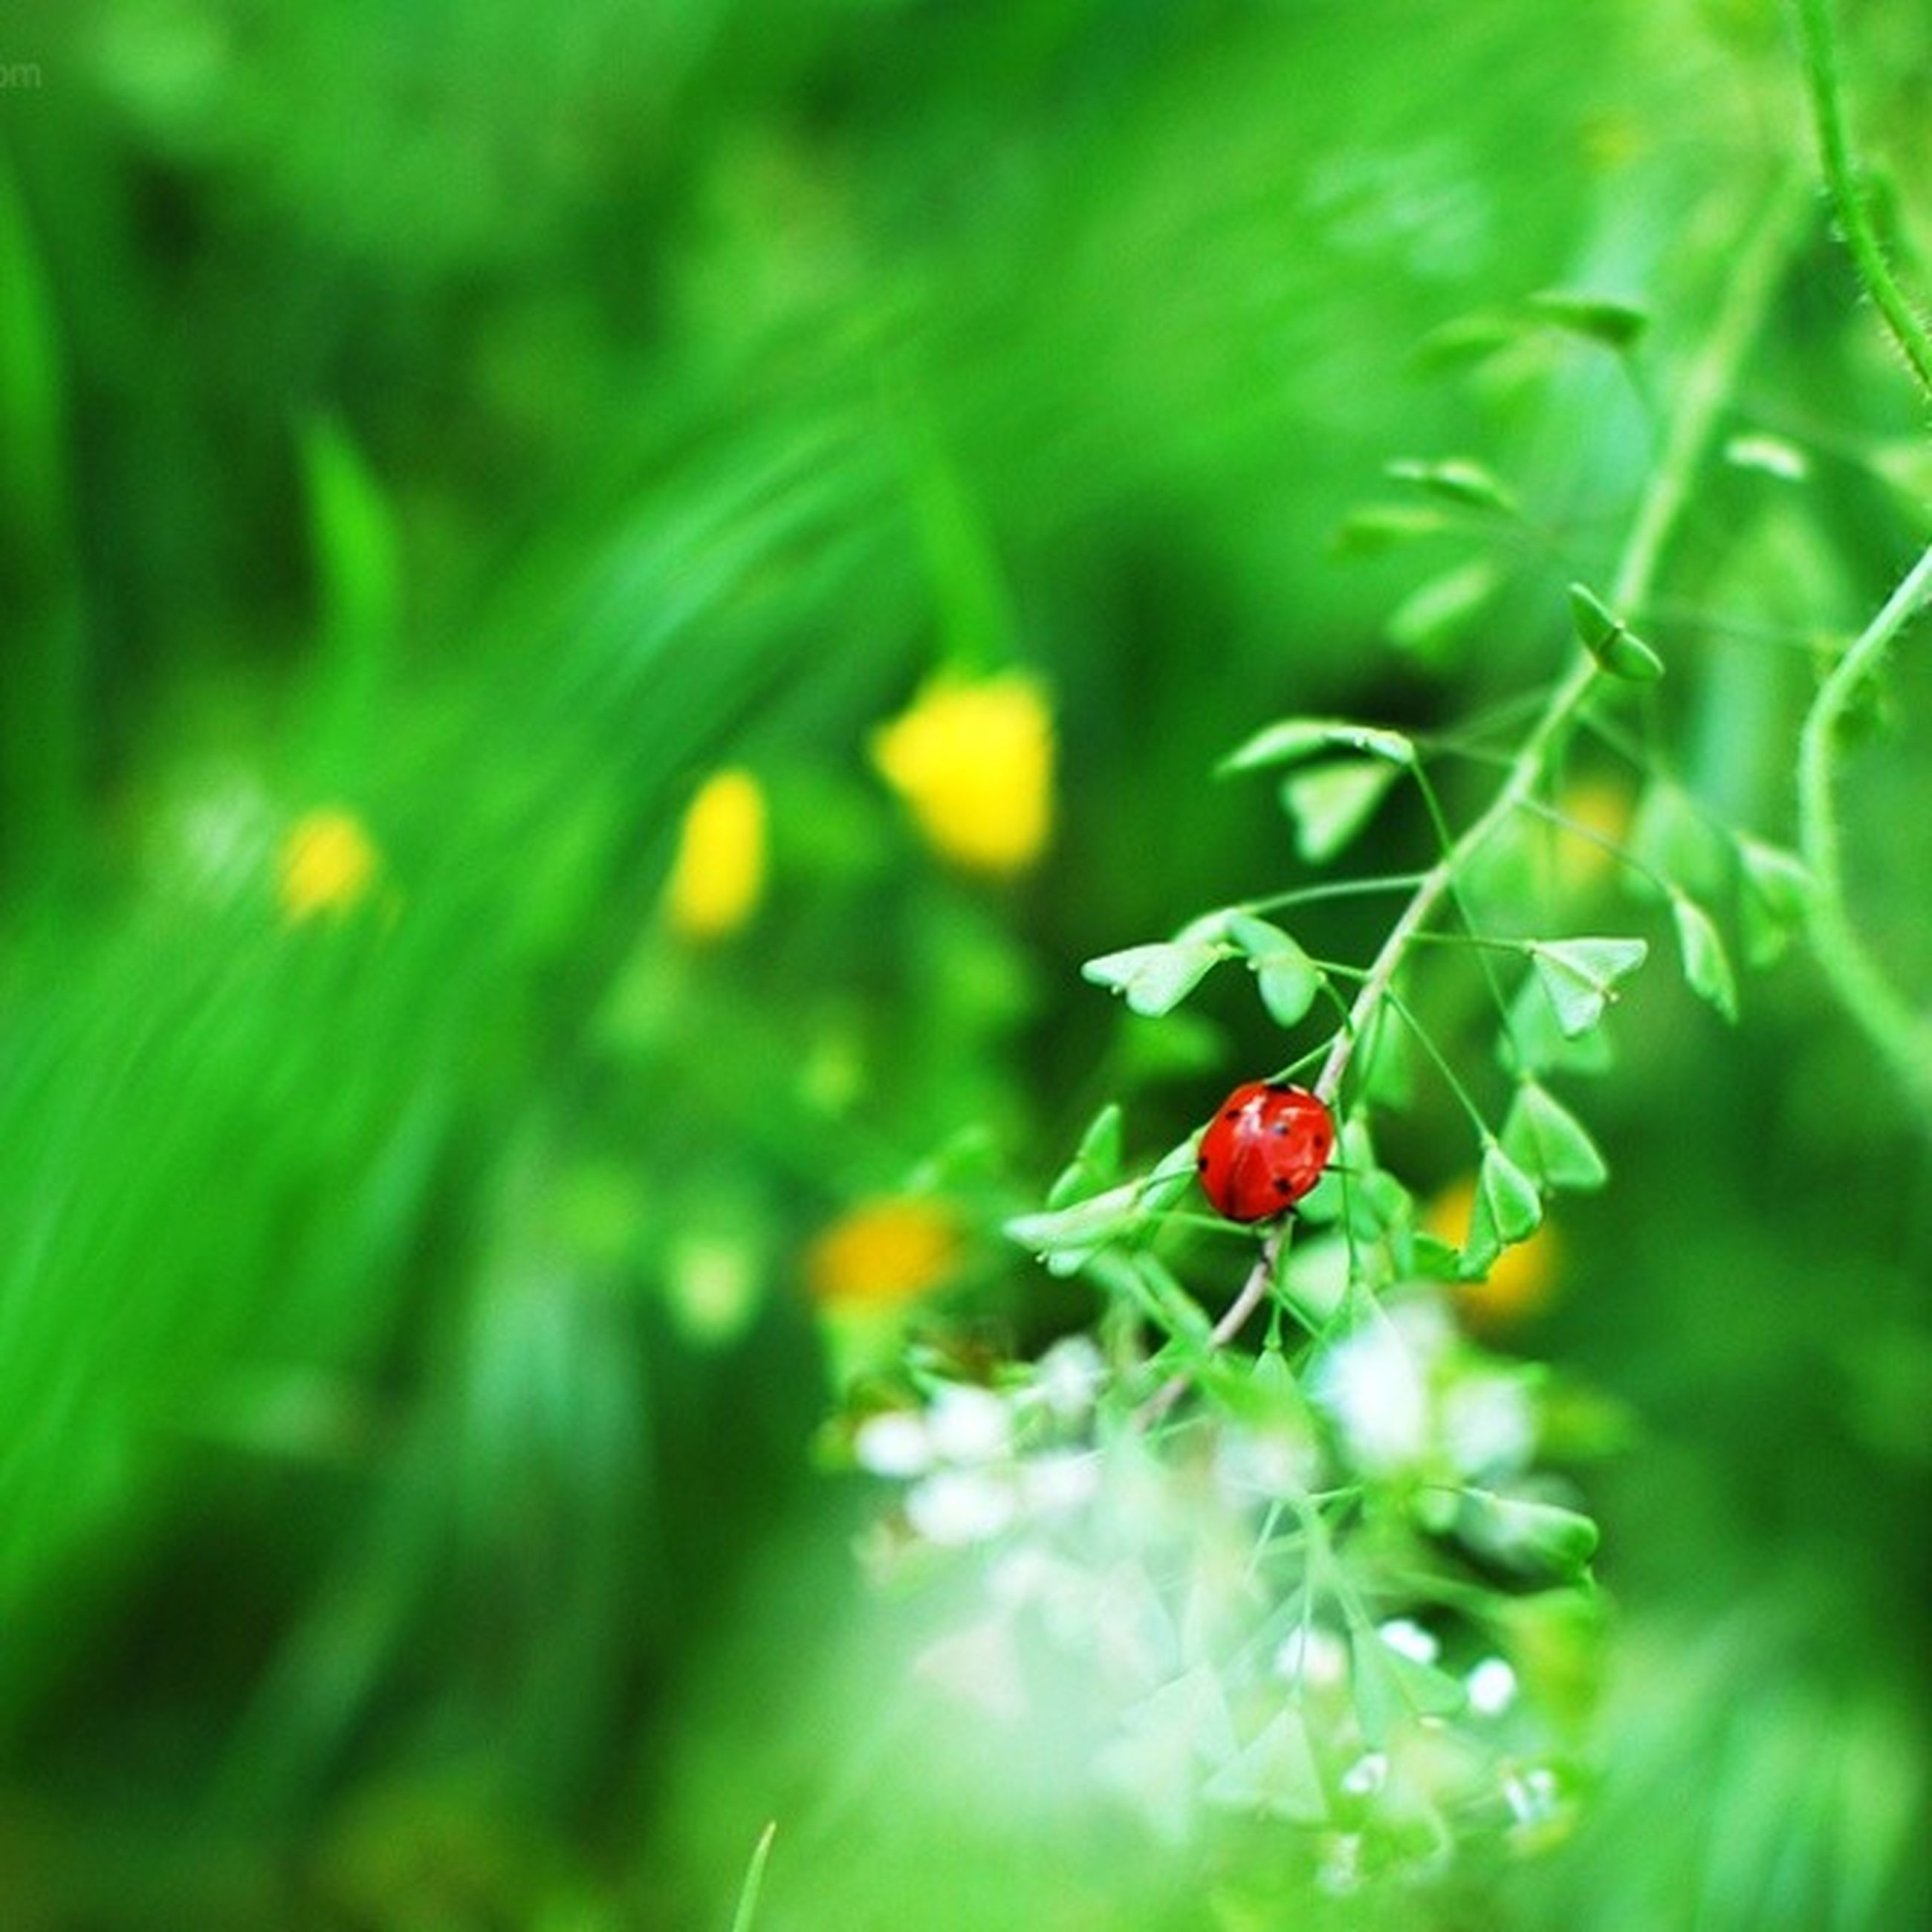 growth, red, green color, freshness, plant, leaf, fruit, close-up, food and drink, nature, focus on foreground, selective focus, beauty in nature, growing, healthy eating, food, berry fruit, berry, stem, field